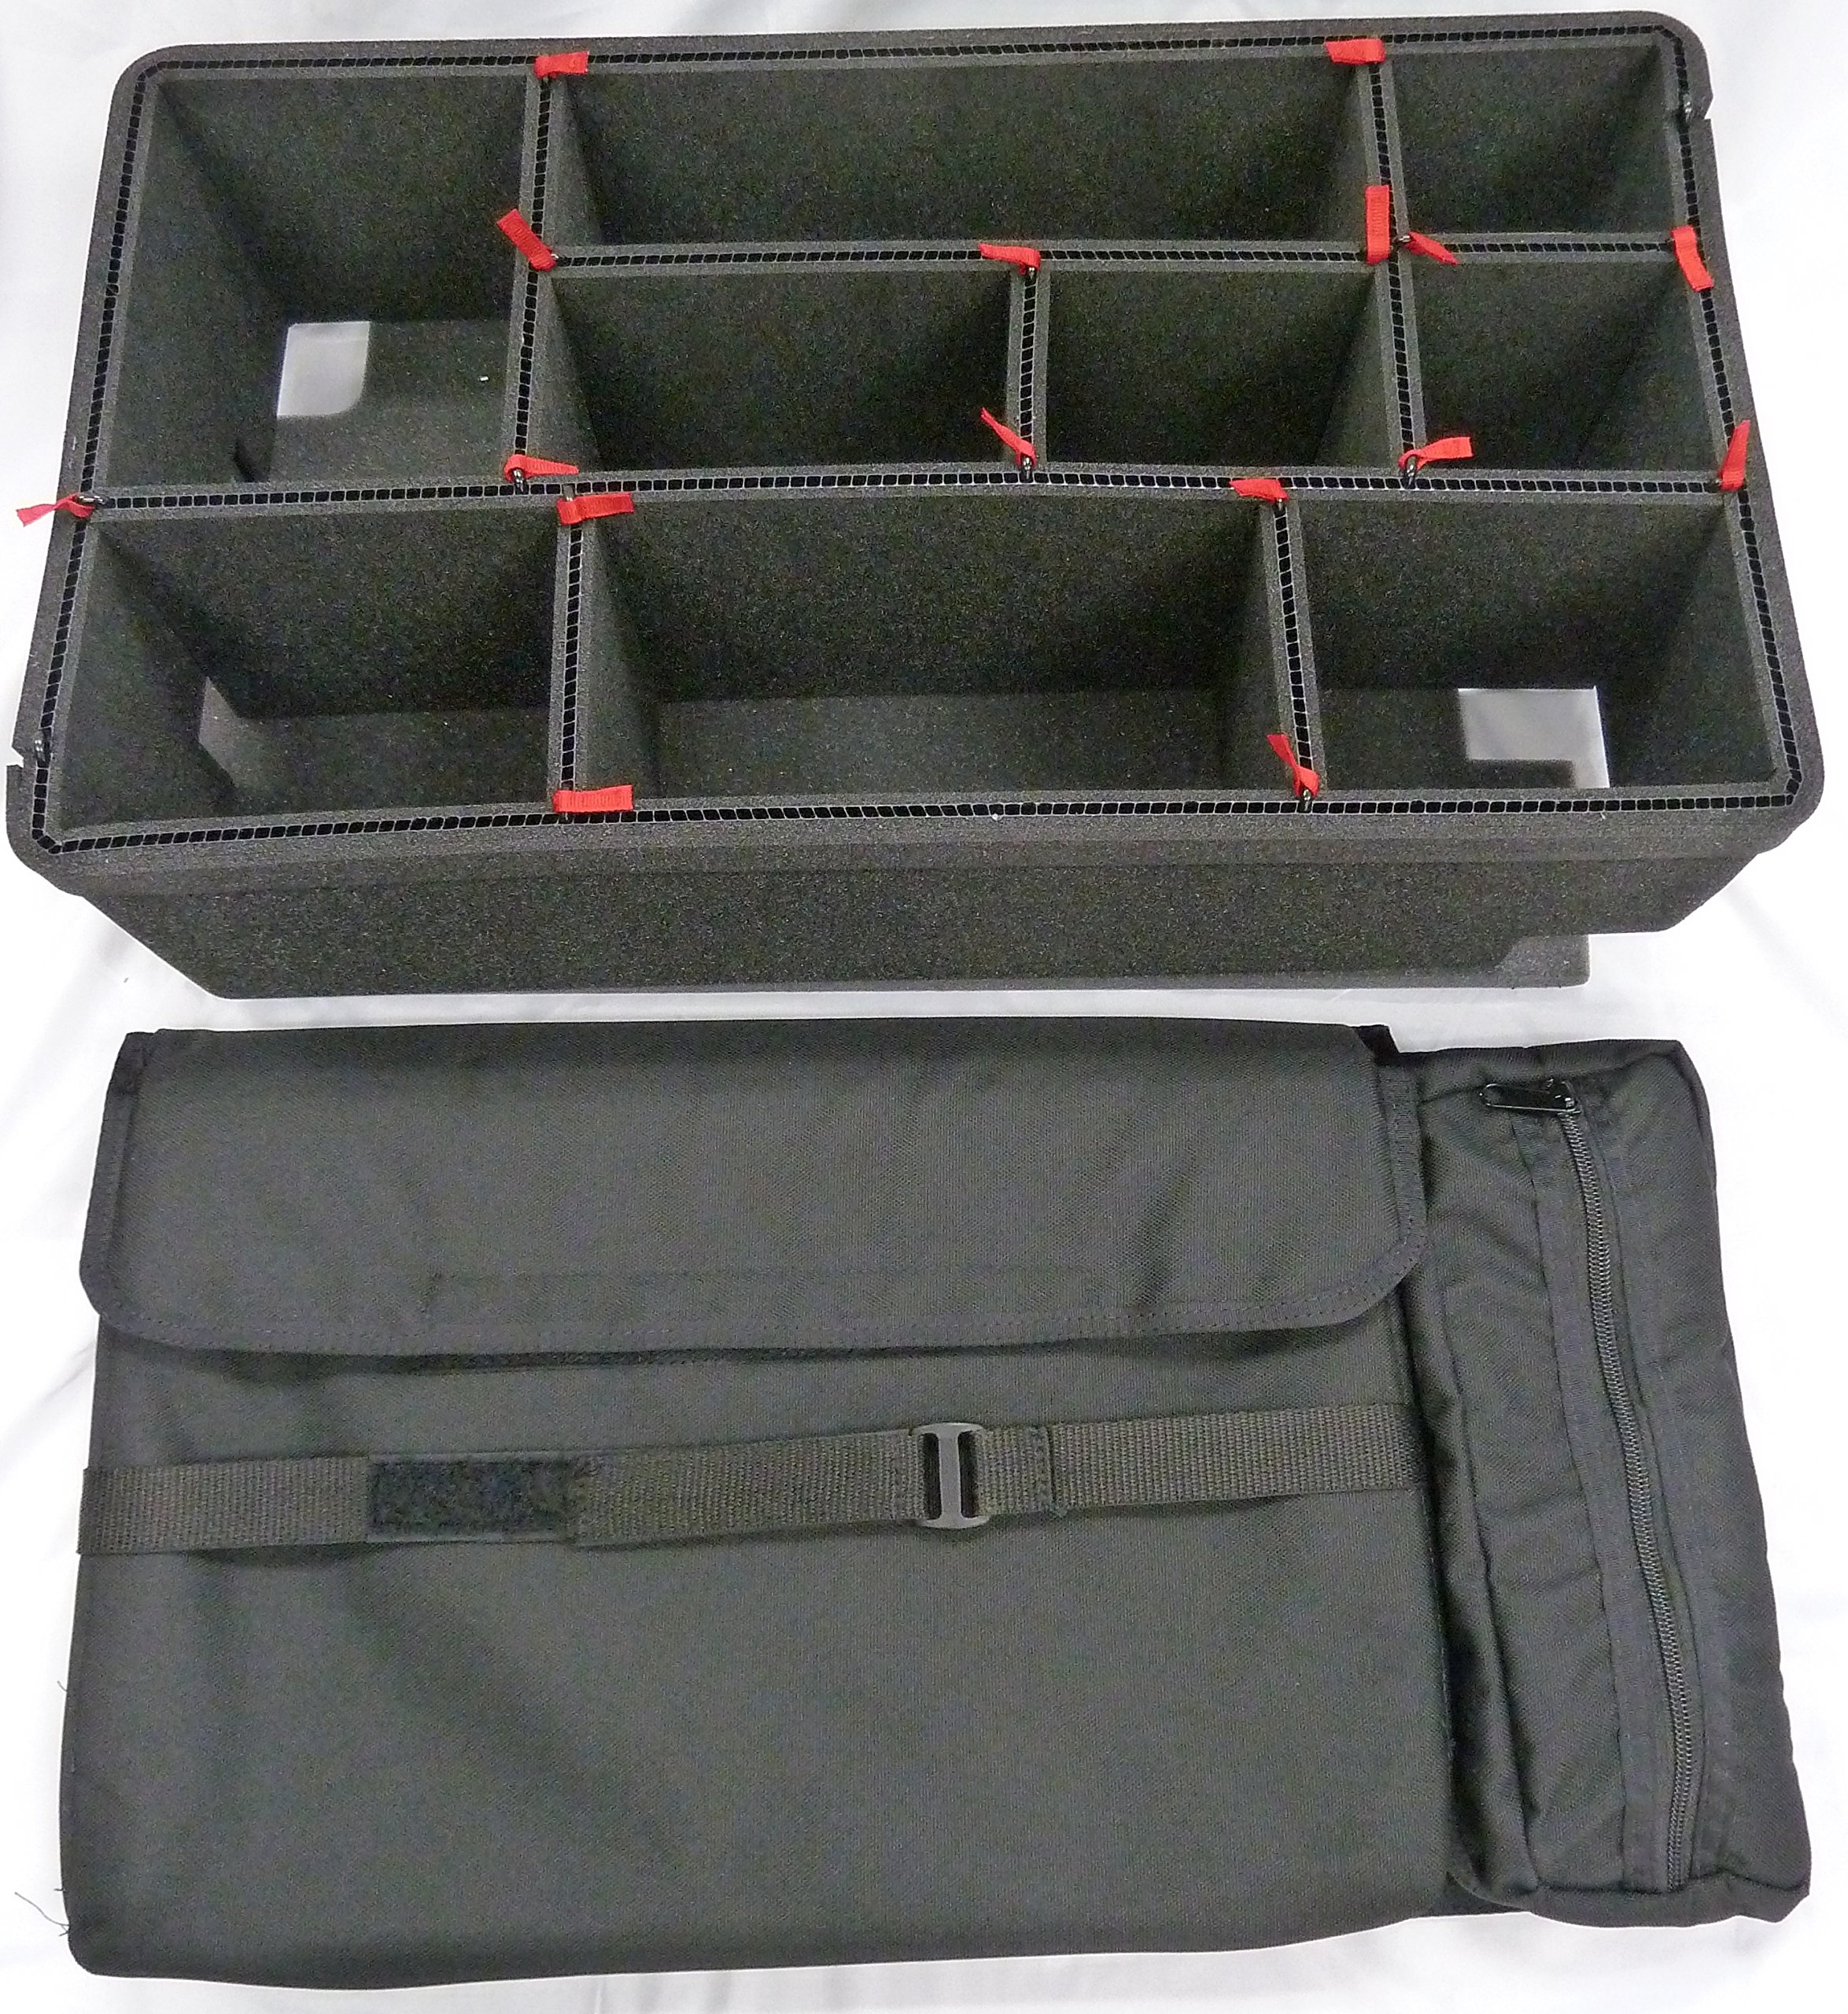 TrekPak Divider System to fit the Pelican 1510 case & 1510SC Computer Lid pouch. by CVPKG & Pelican (Image #1)